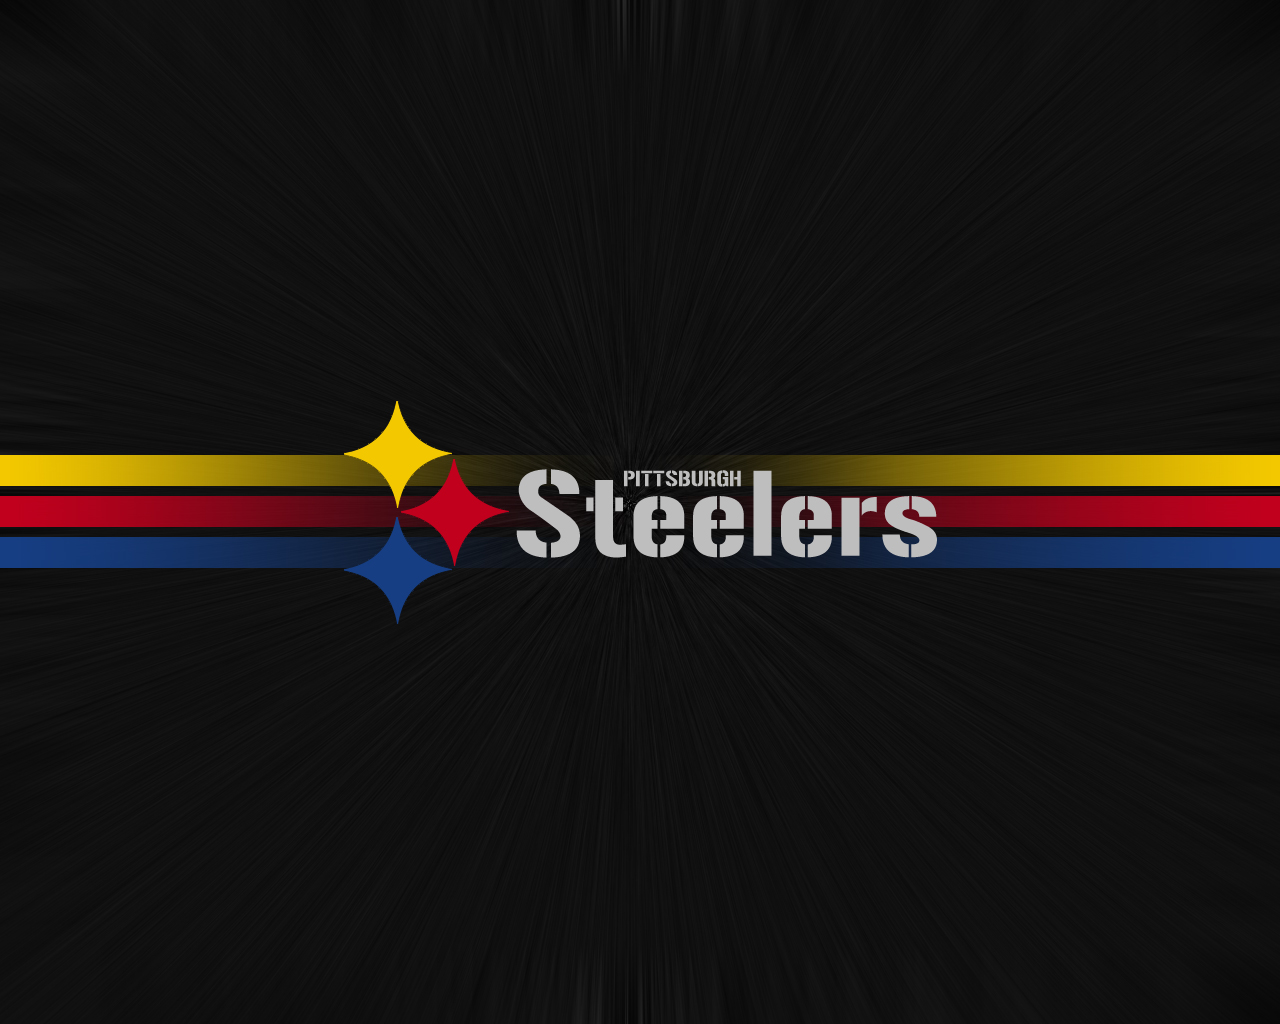 Steelers Wallpaper Hd Images amp Pictures   Becuo 1280x1024